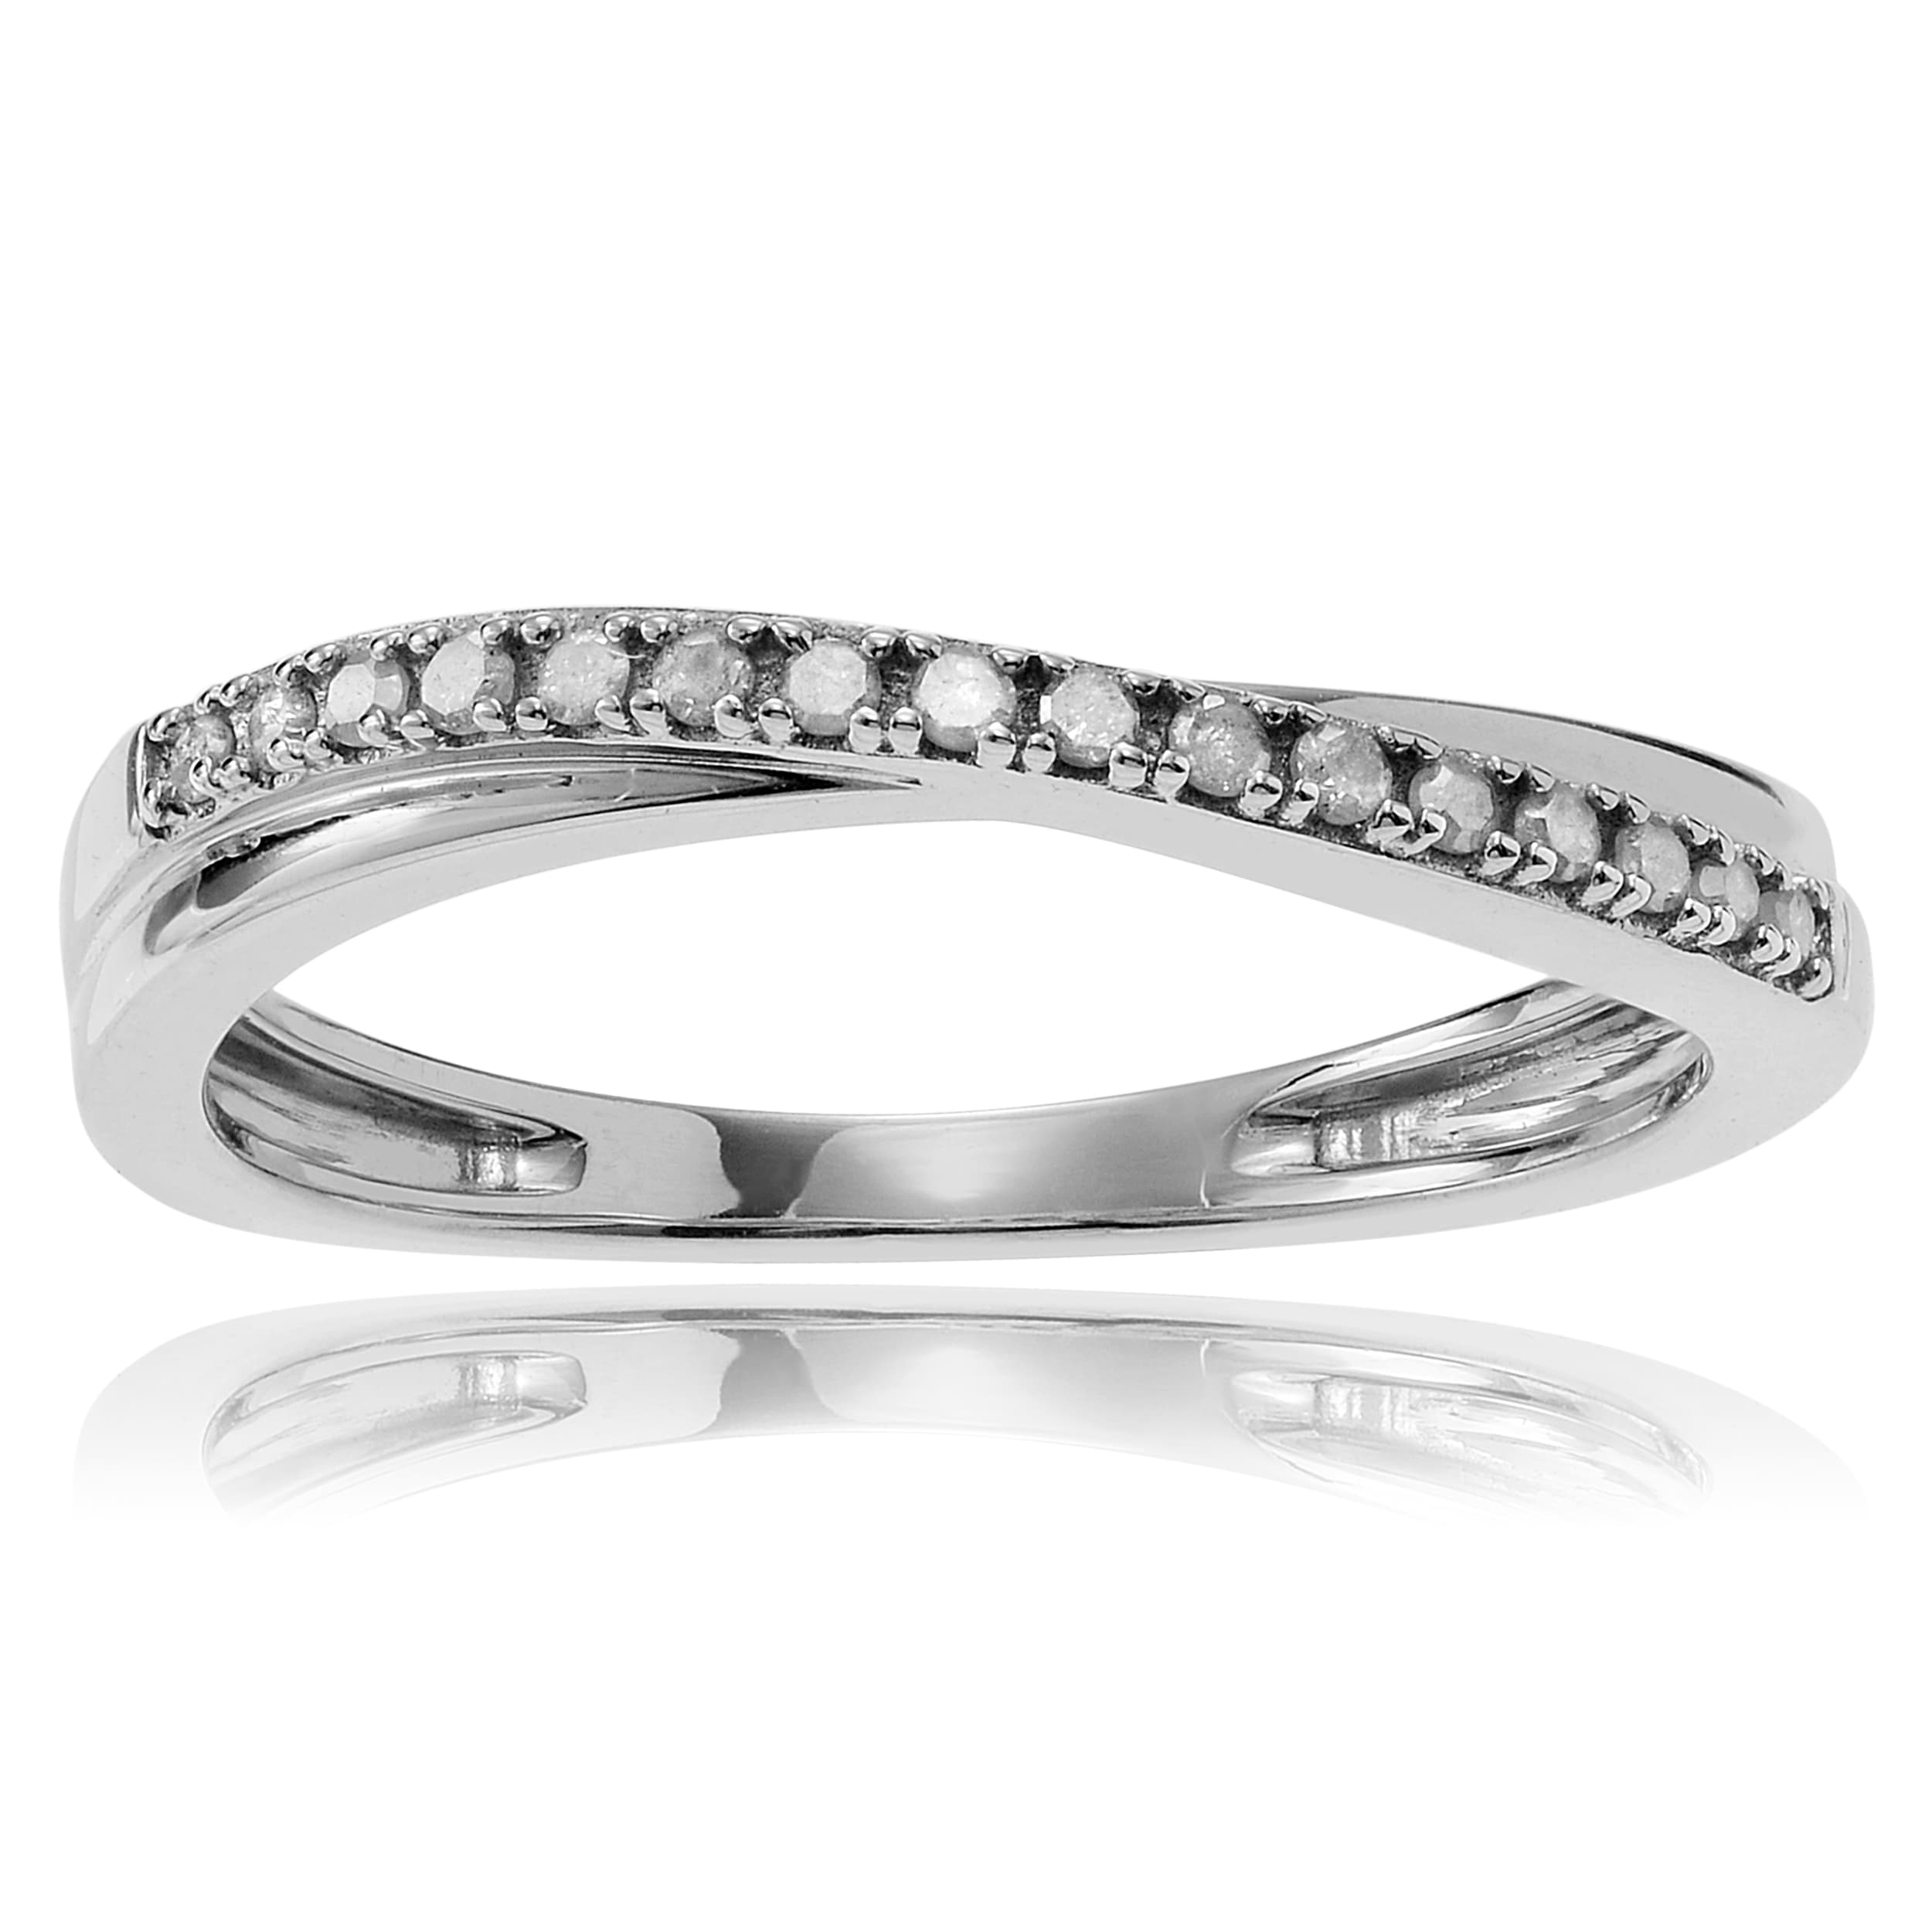 Journee collection Sterling Silver 1/6 ct Diamond Pave-se...